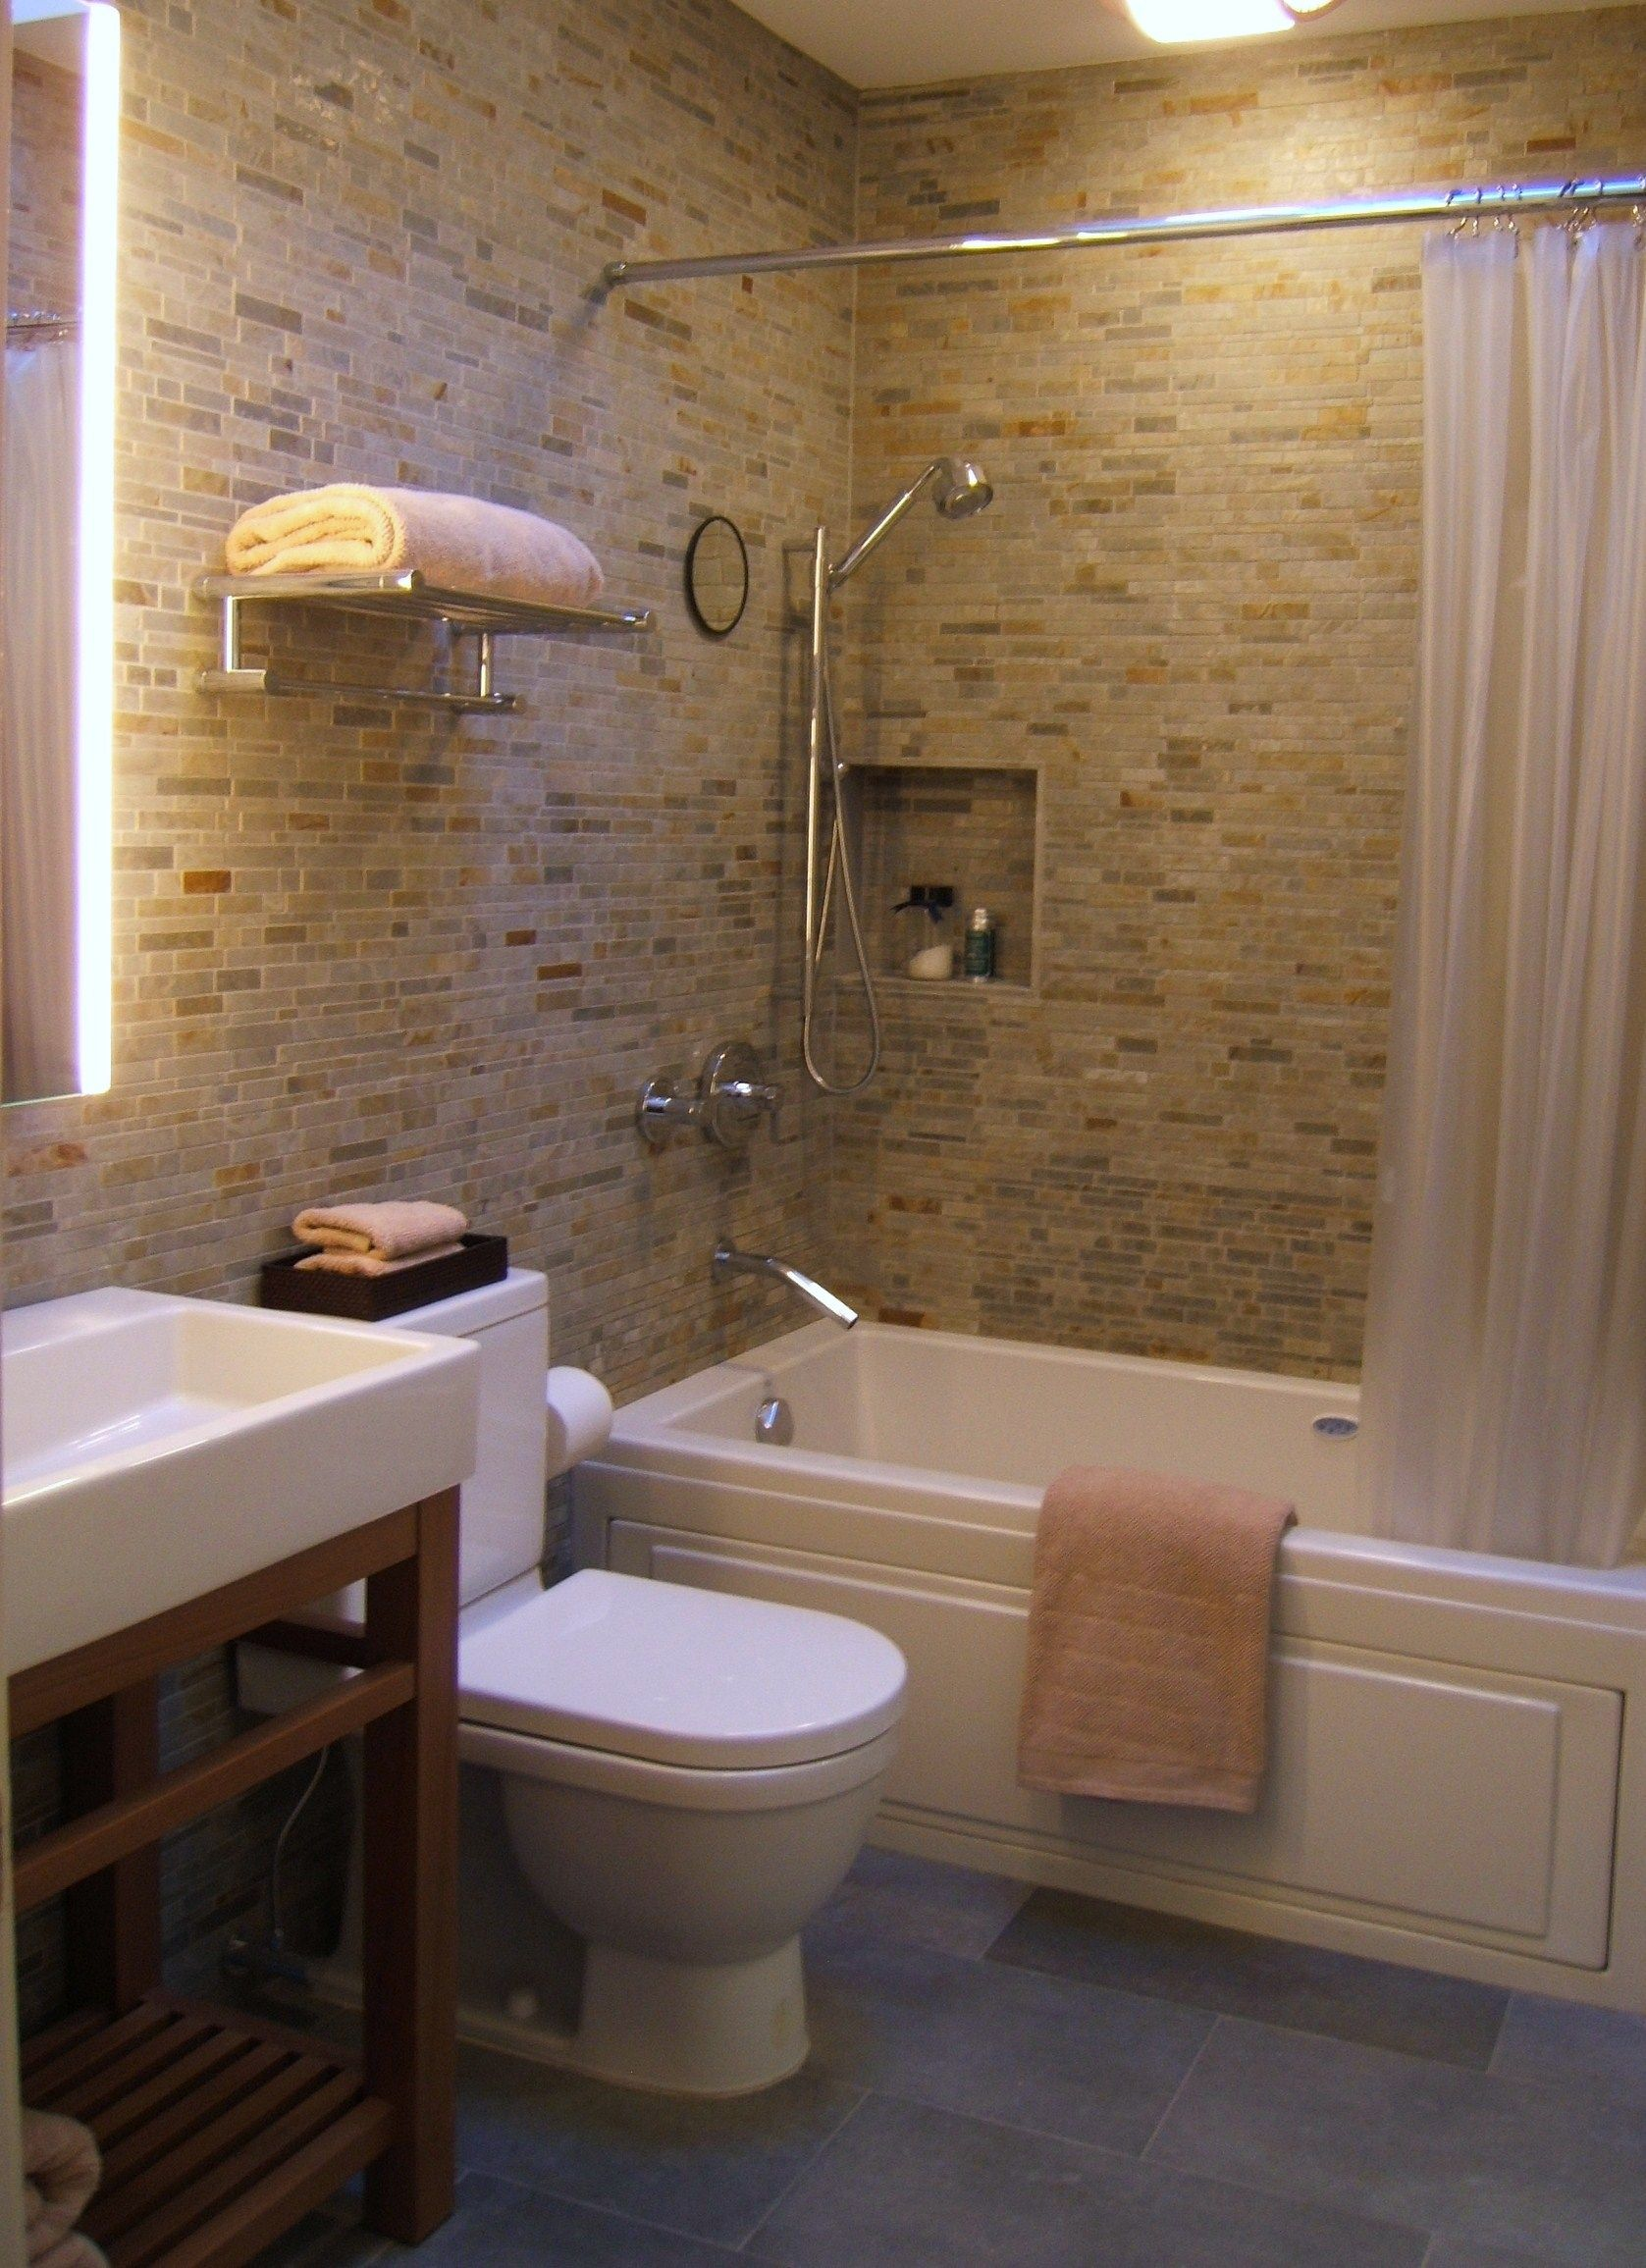 Small bathroom designs south africa small bath for Small bathroom makeover ideas